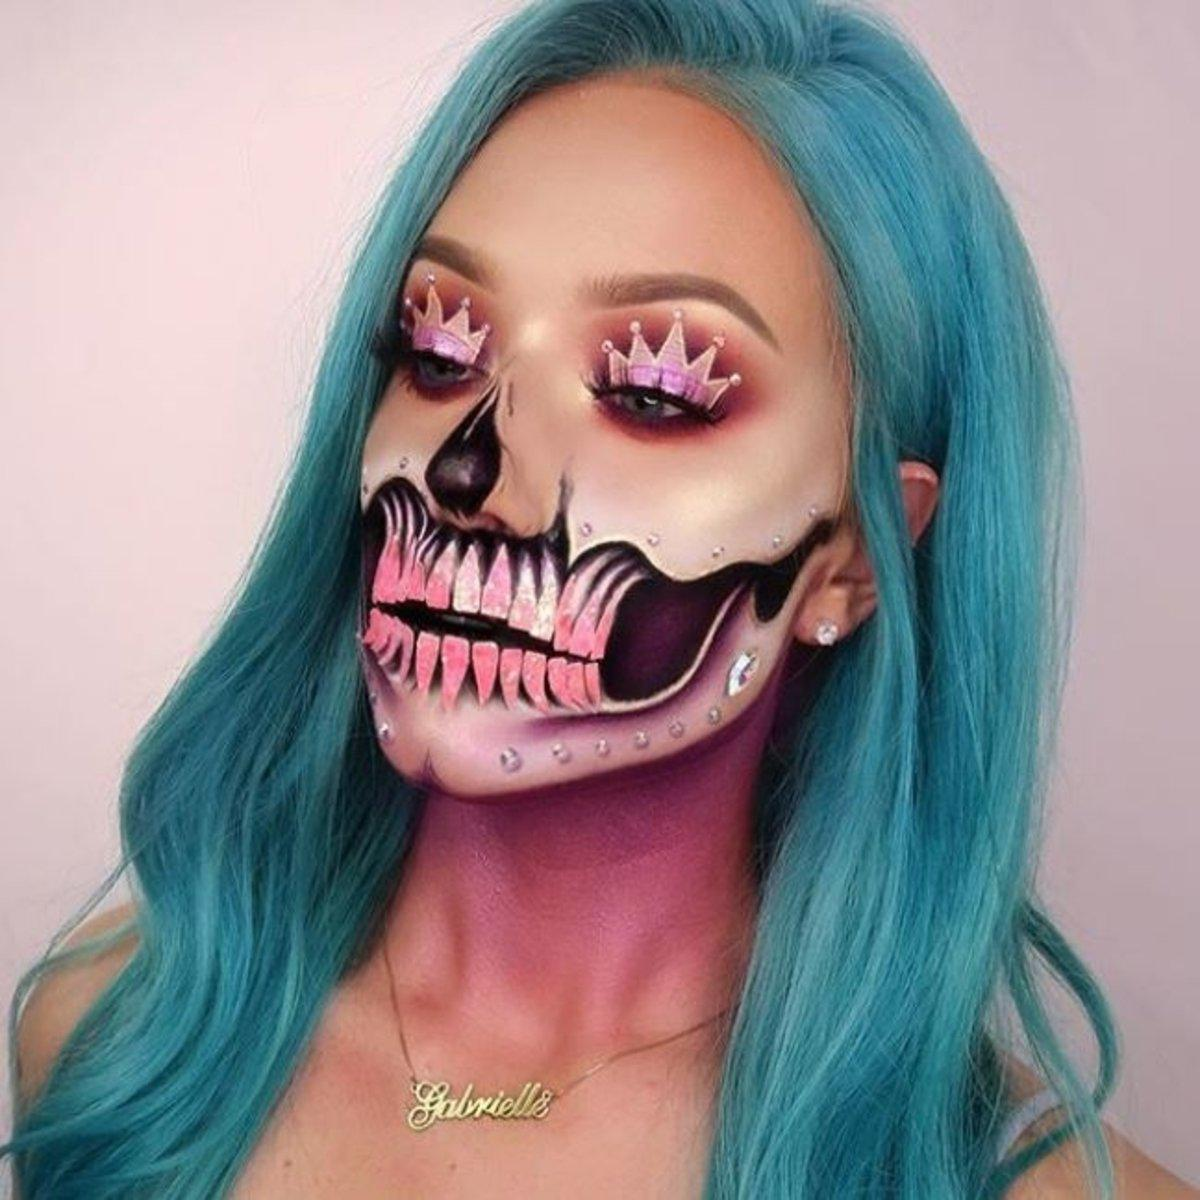 Our 5 Fave Instagram Halloween Looks